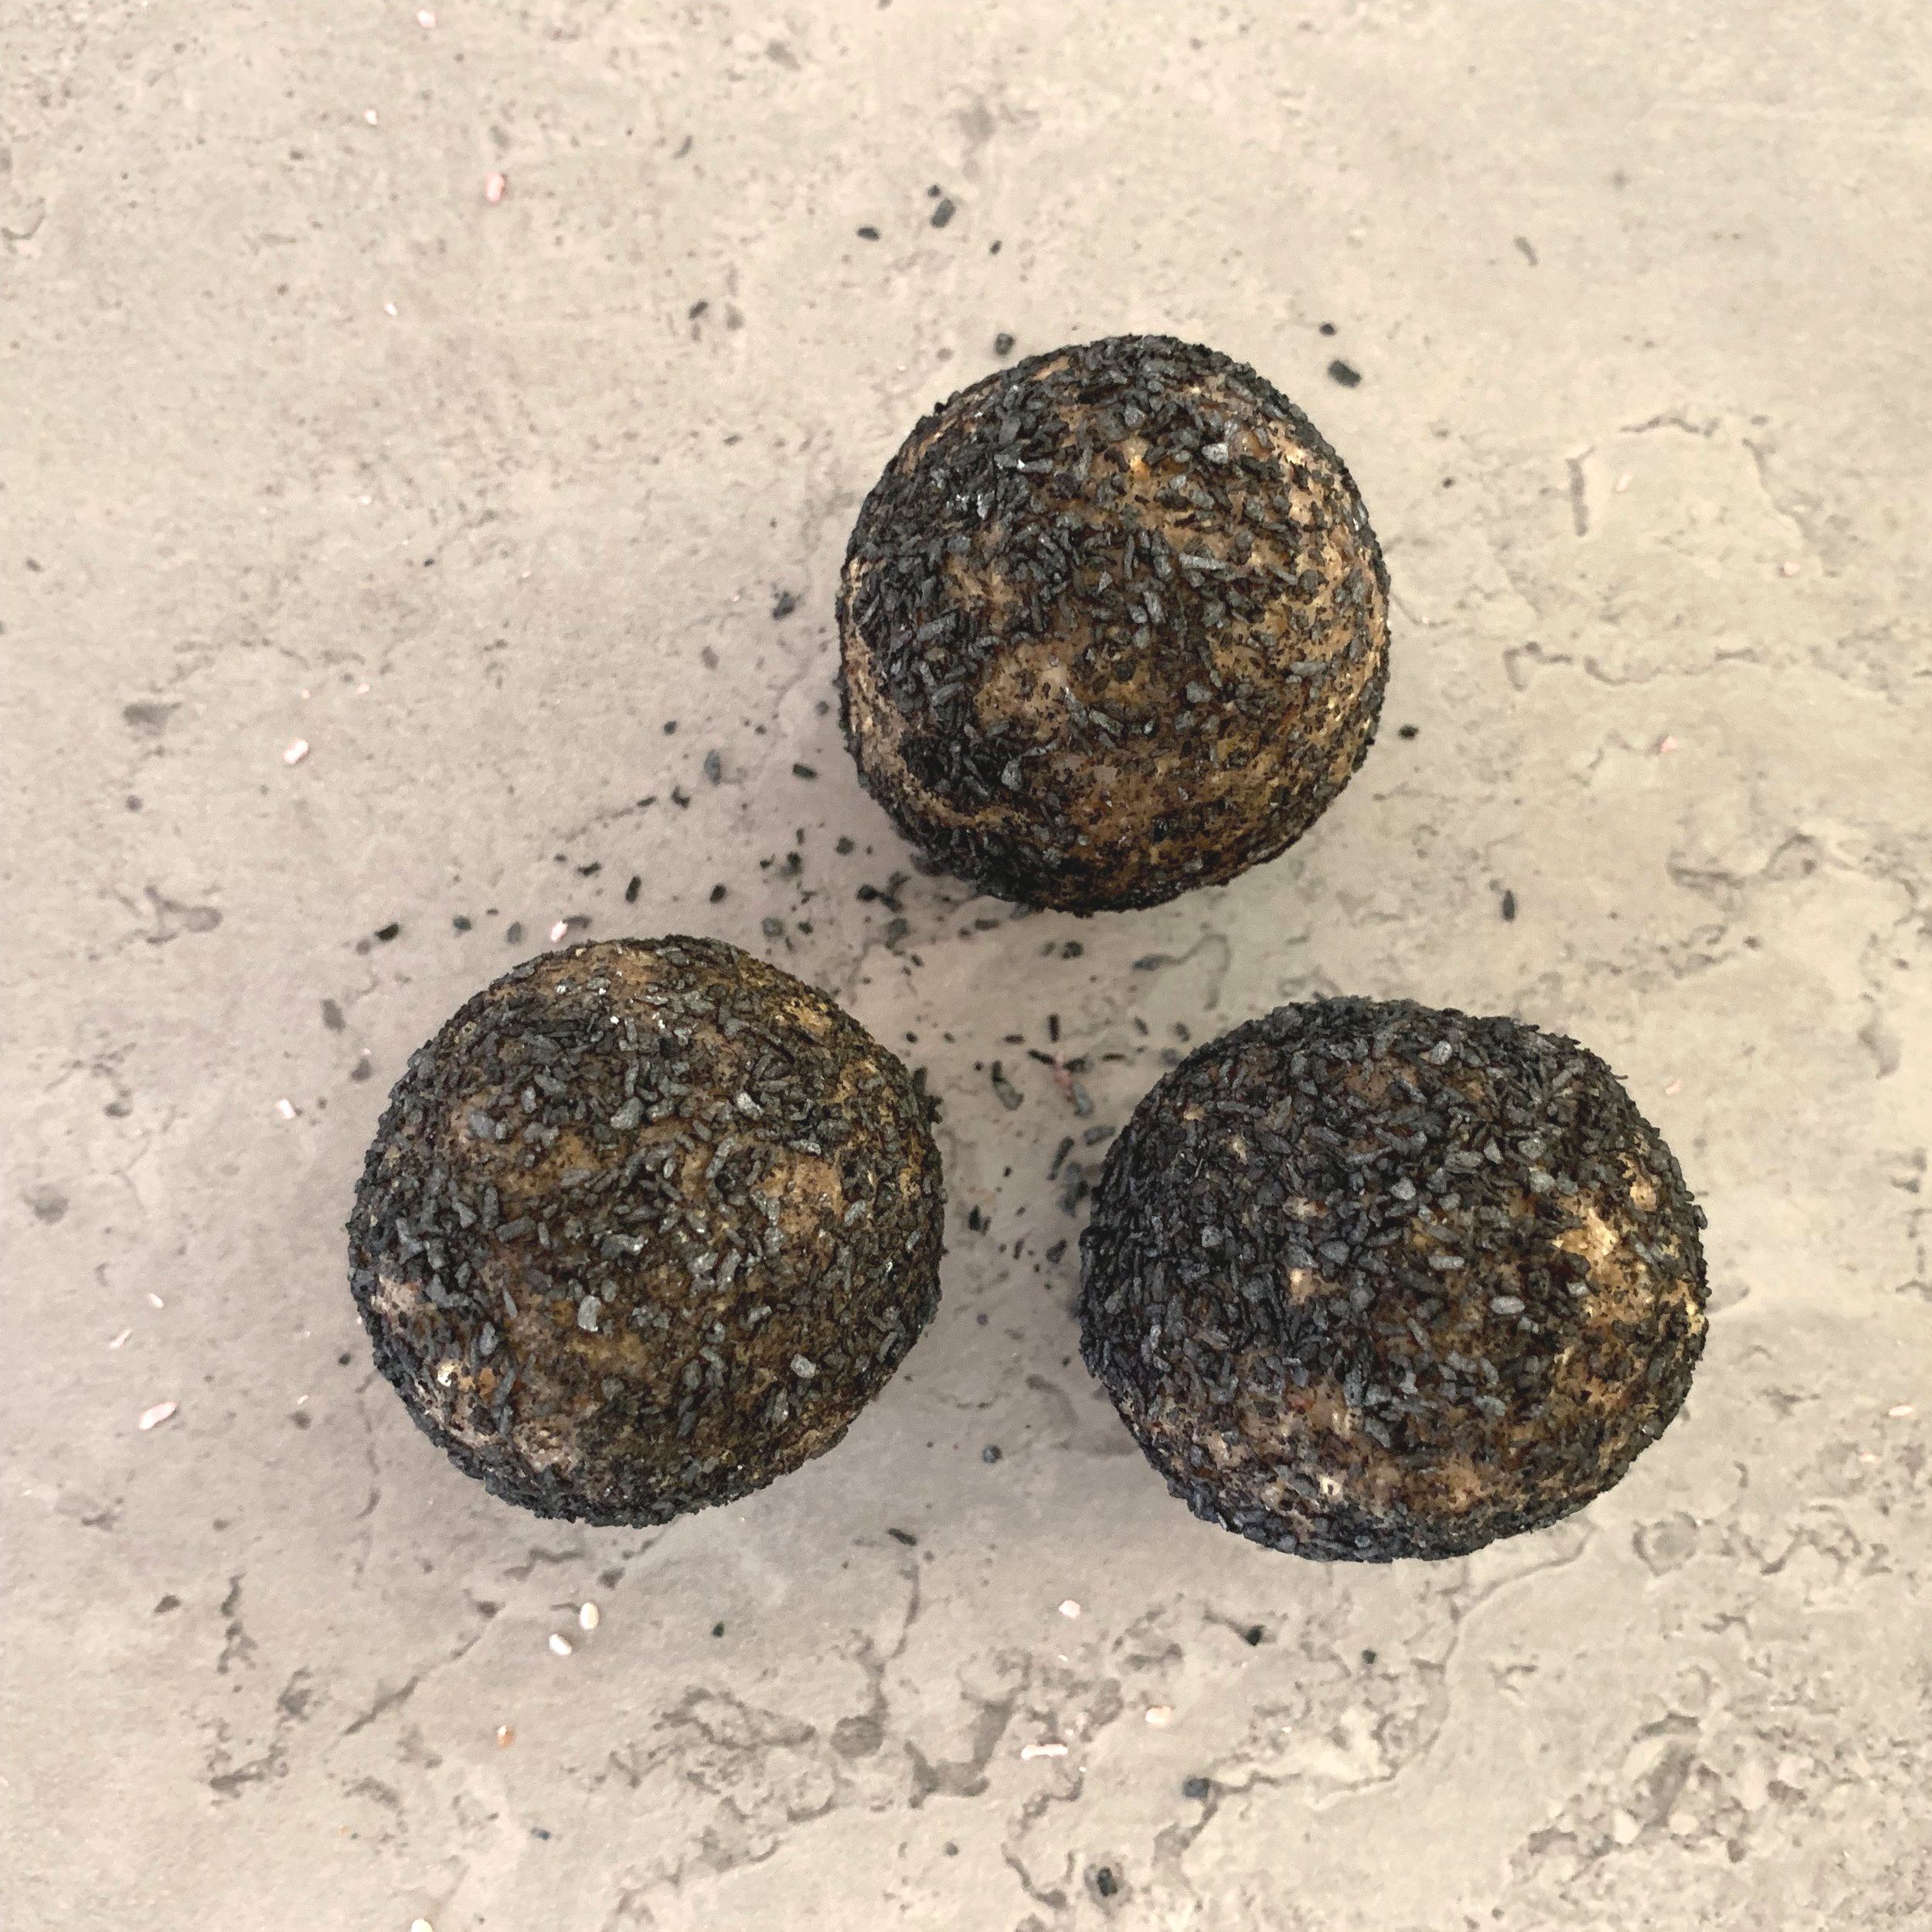 LIQUORICE BALL Ingredients;  Coconut, dates, liquorice, sunflower seeds, salt, coconut cream, activated coal powder